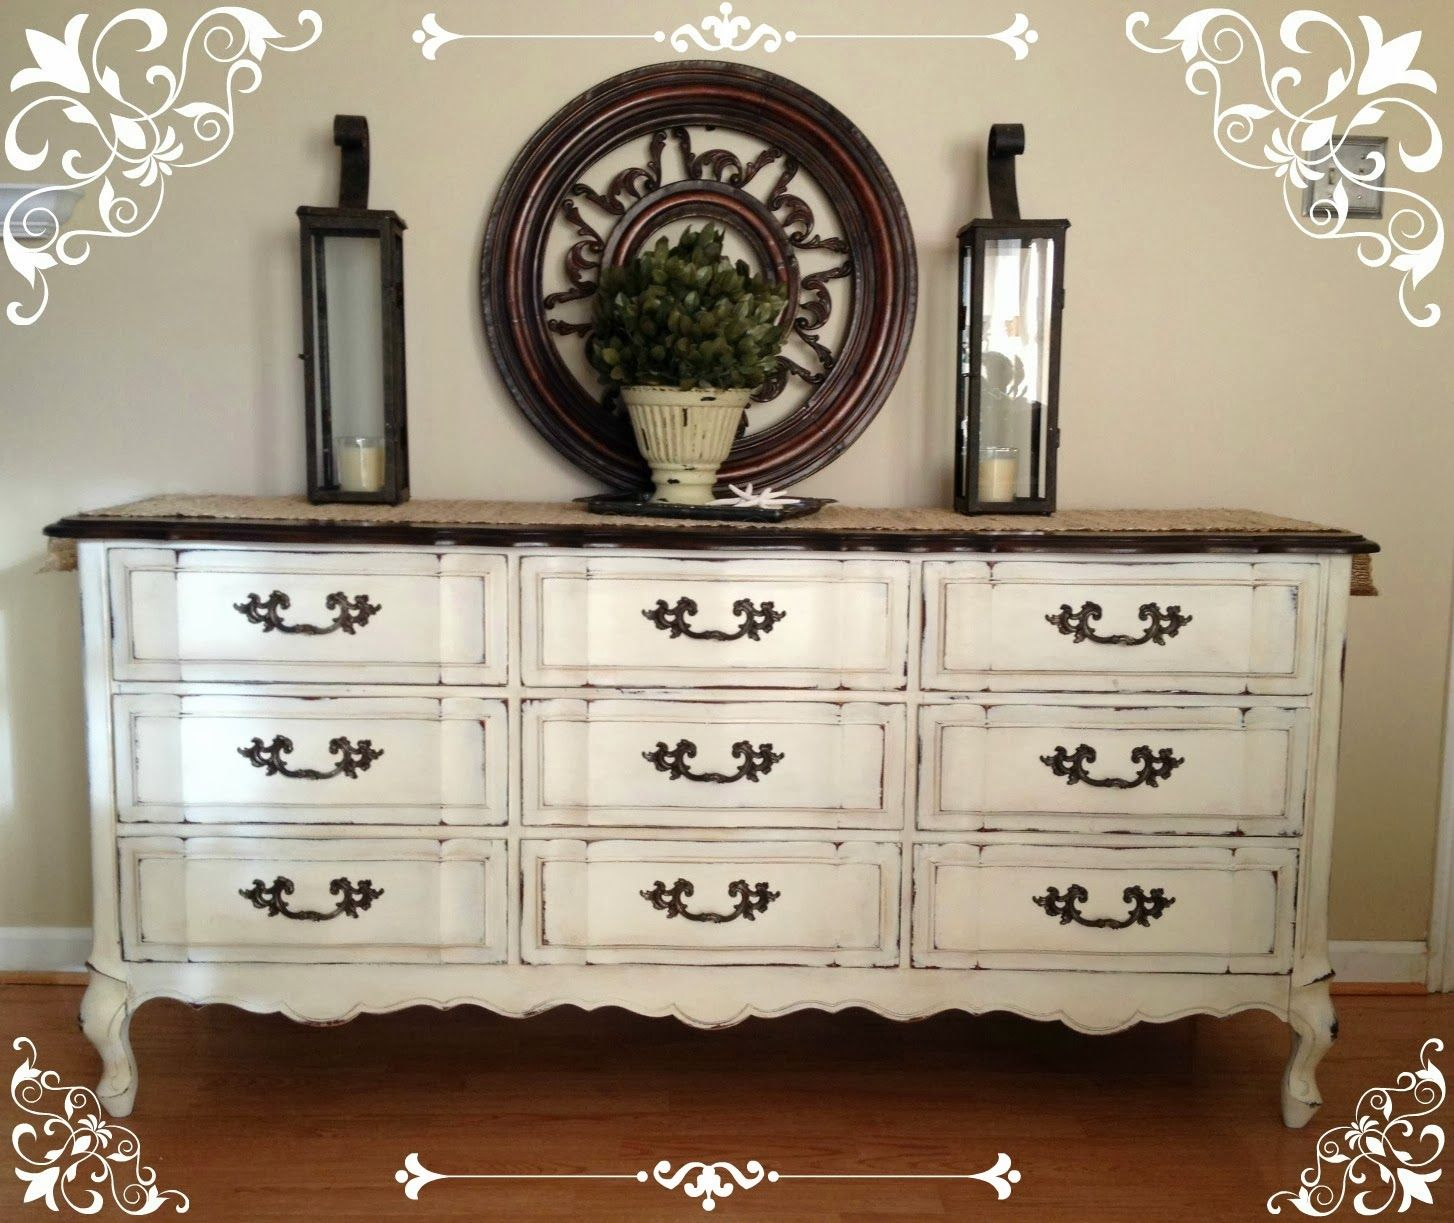 Vintage Country Style: Get Inspired! Before & After